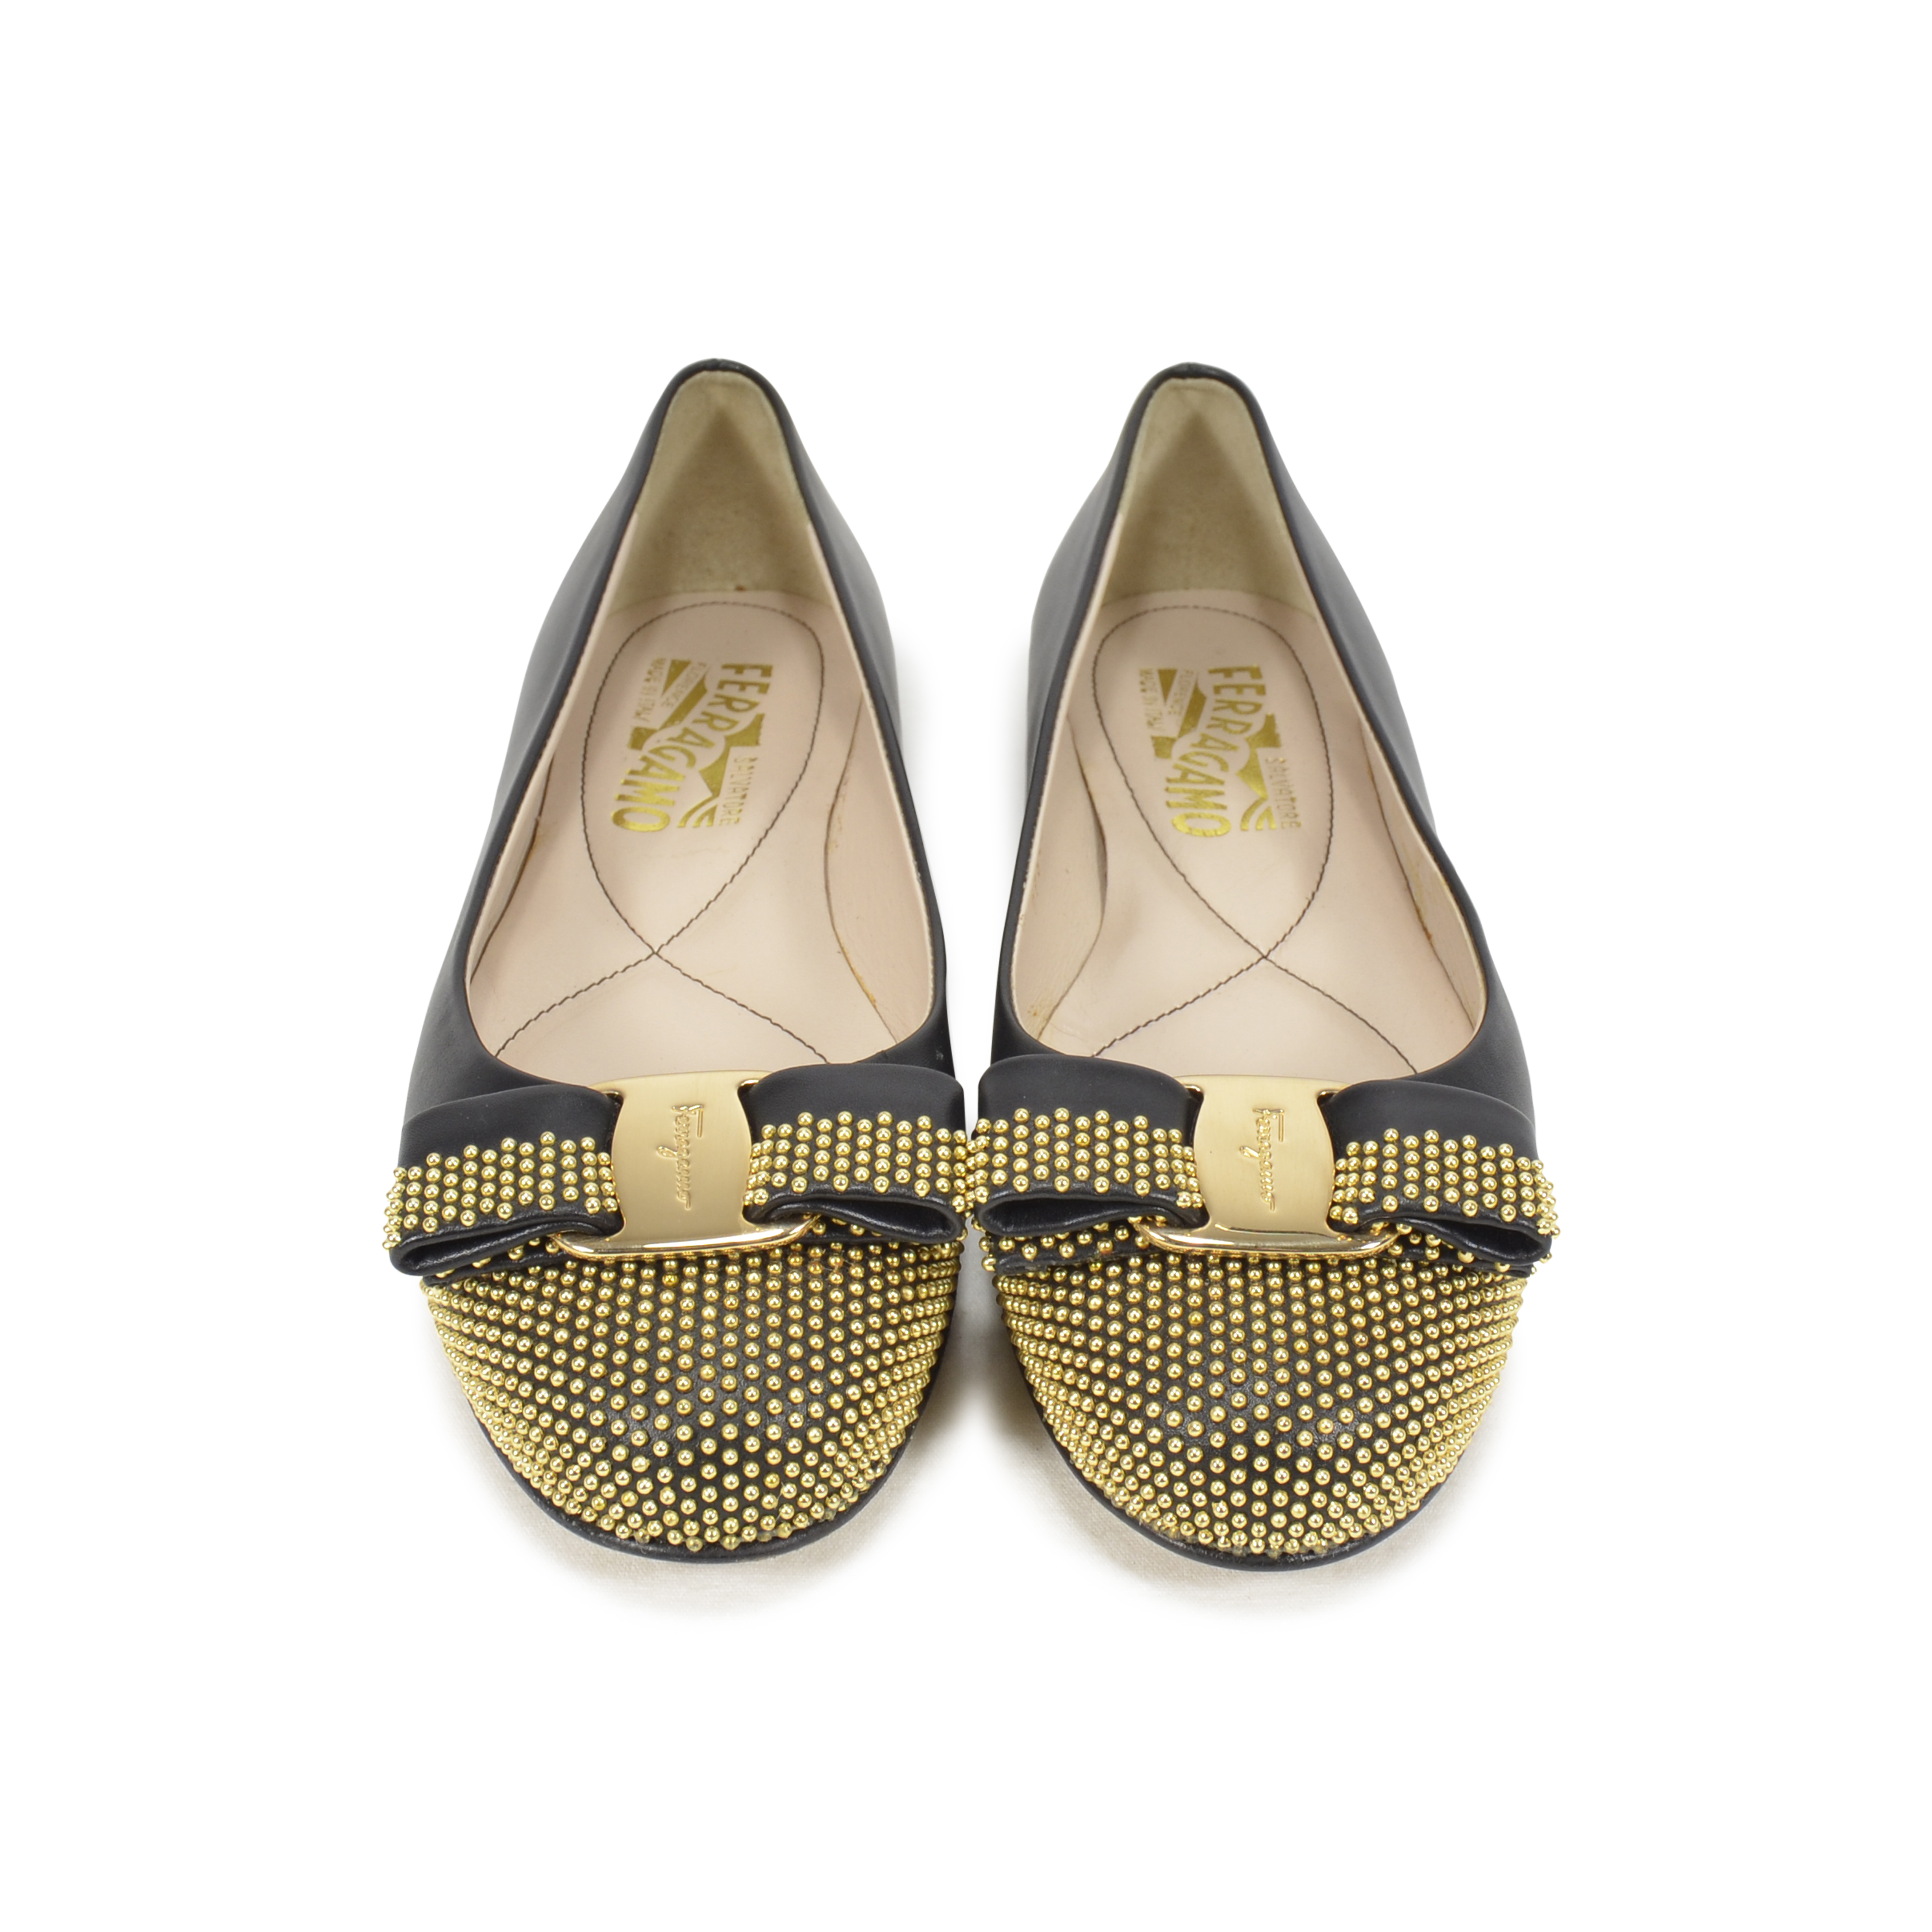 4ee9cb86f Authentic Second Hand Salvatore Ferragamo Varina Studded Ballerinas  (PSS-343-00004) - THE FIFTH COLLECTION